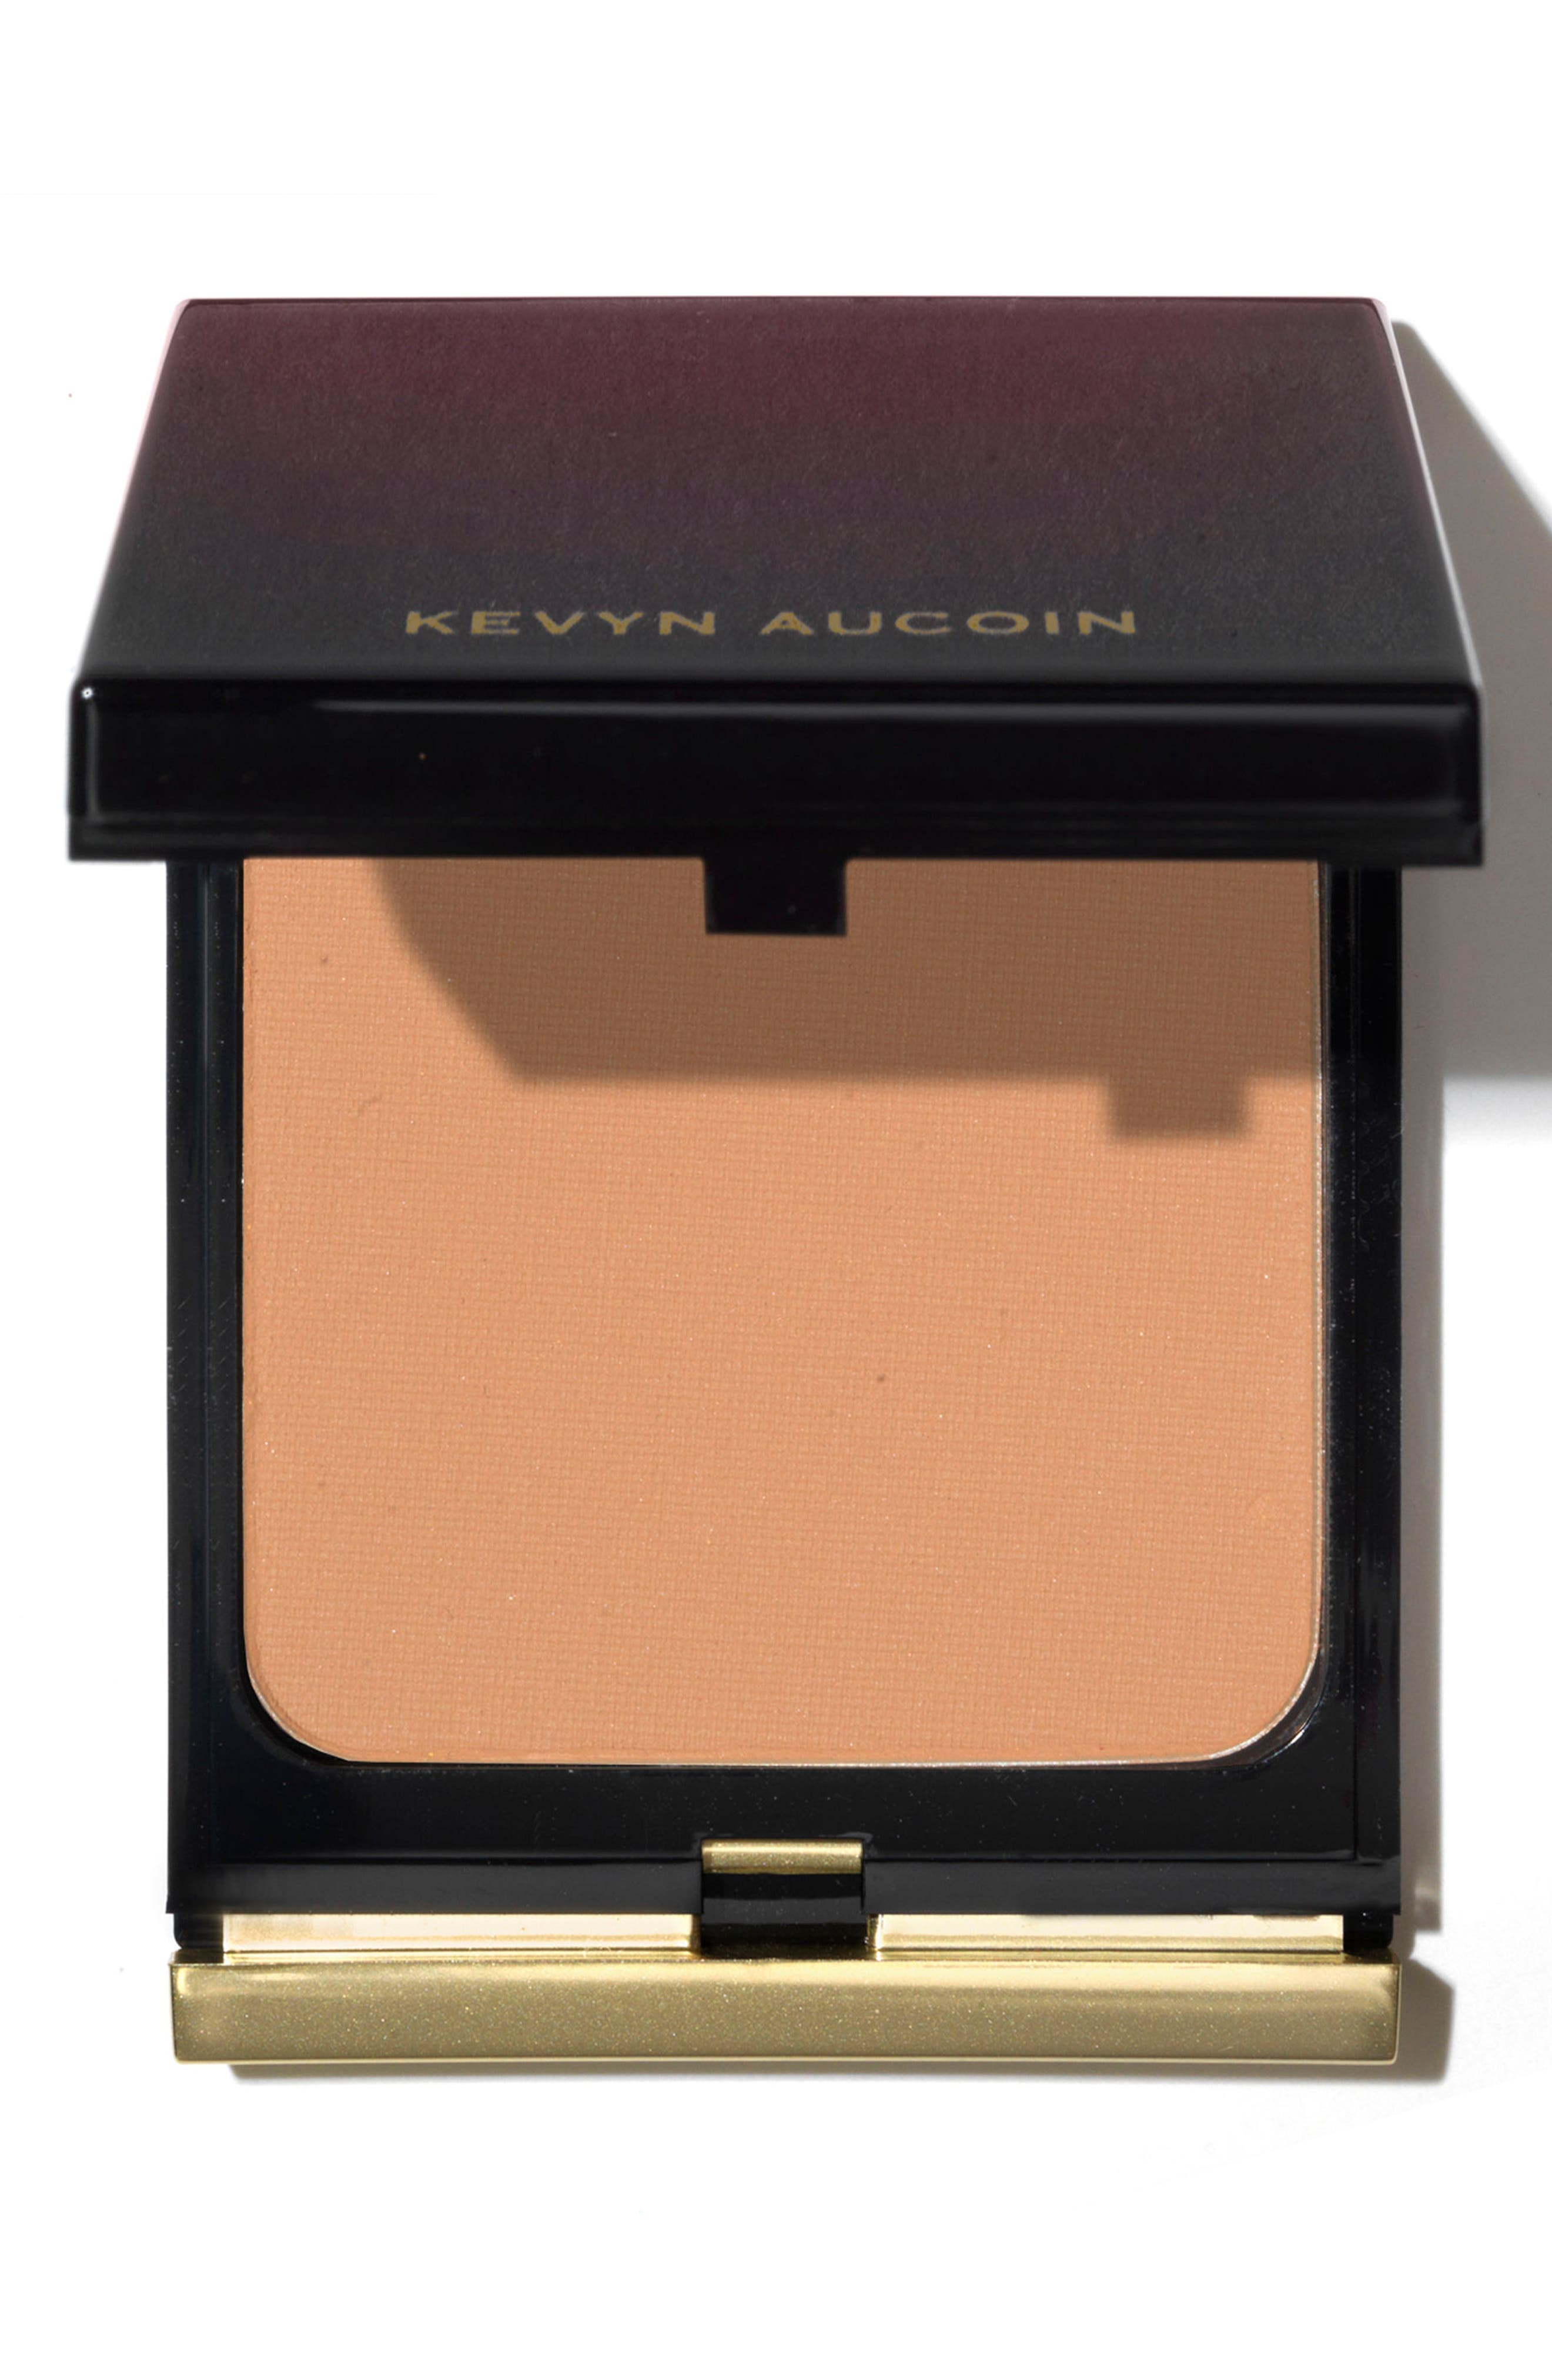 Main Image - SPACE.NK.apothecary Kevyn Aucoin Beauty The Matte Bronzing Veil